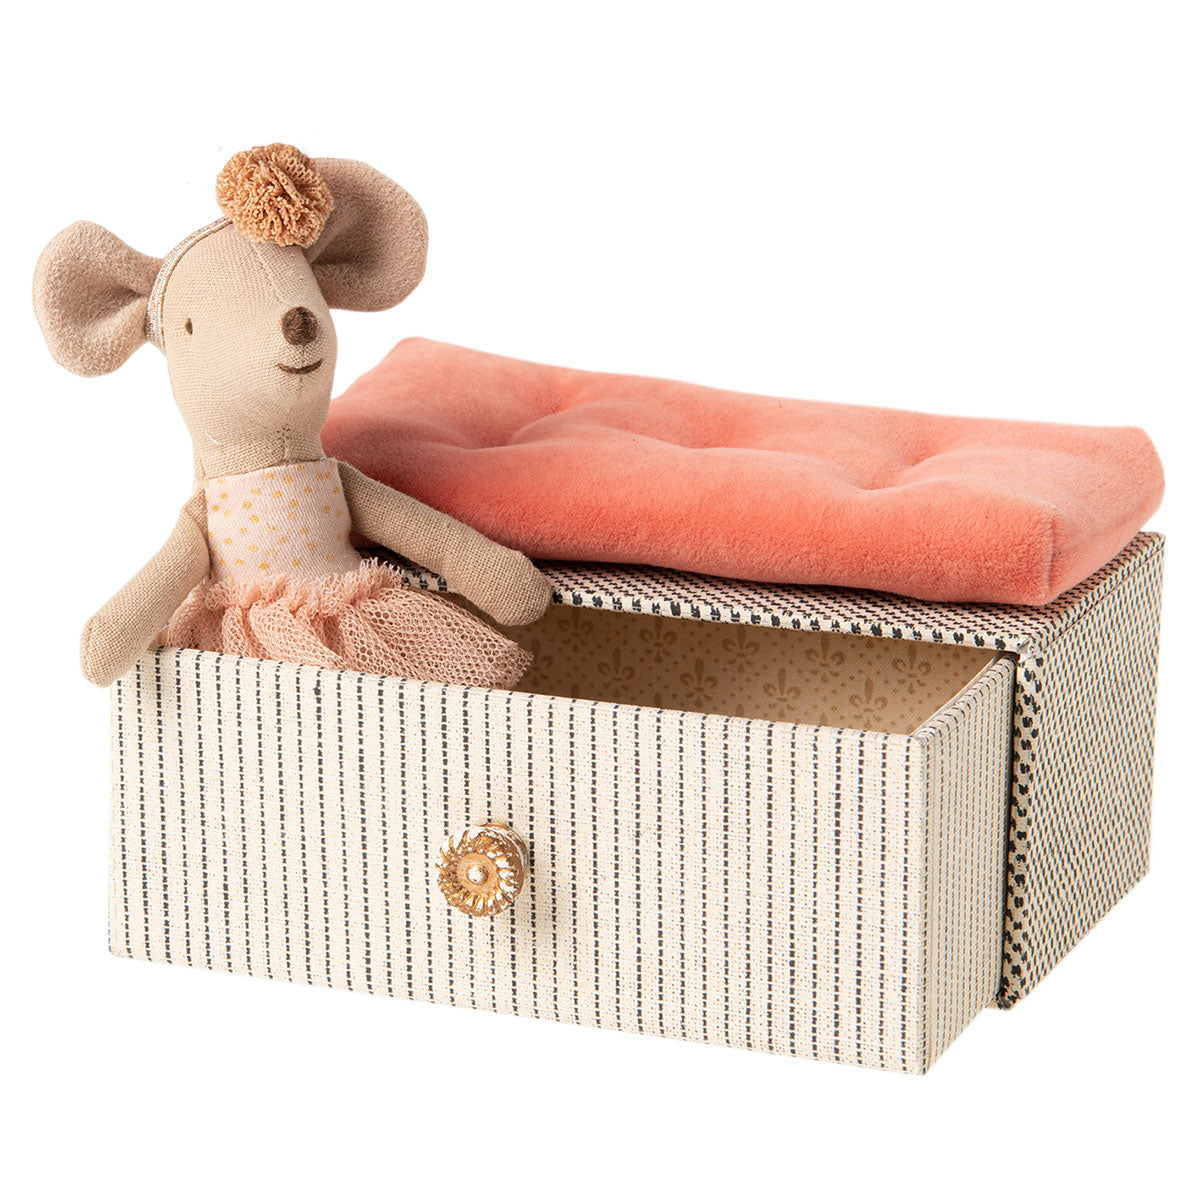 a little sister sized handmade fabric mouse in a ballet costume, sitting in a beautifully decoarted box that also acts as a daybed for a ballet school